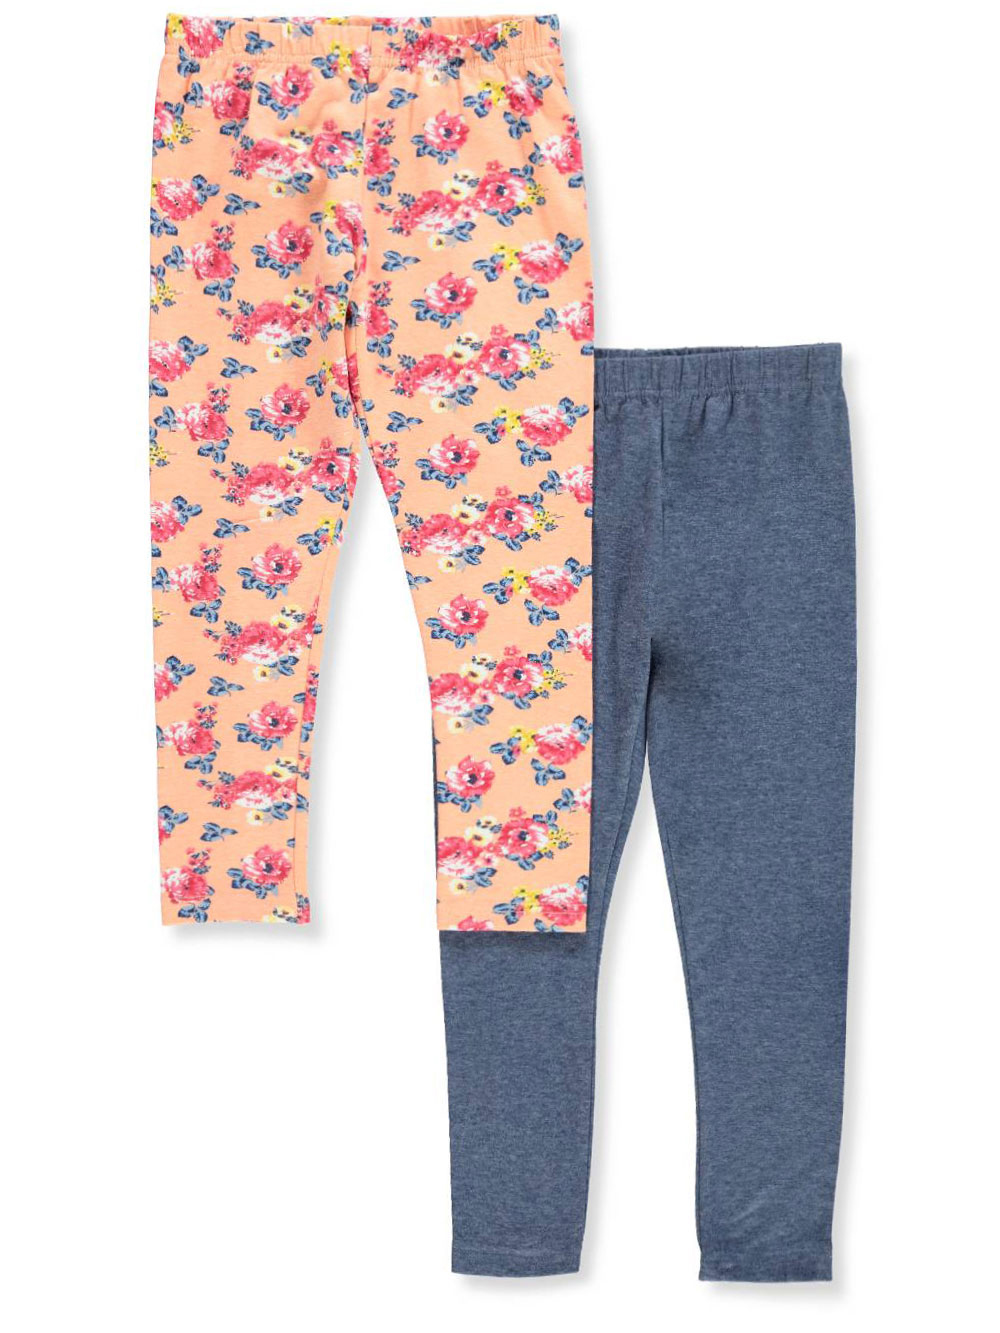 Pink Velvet Girls' 2-Pack Leggings